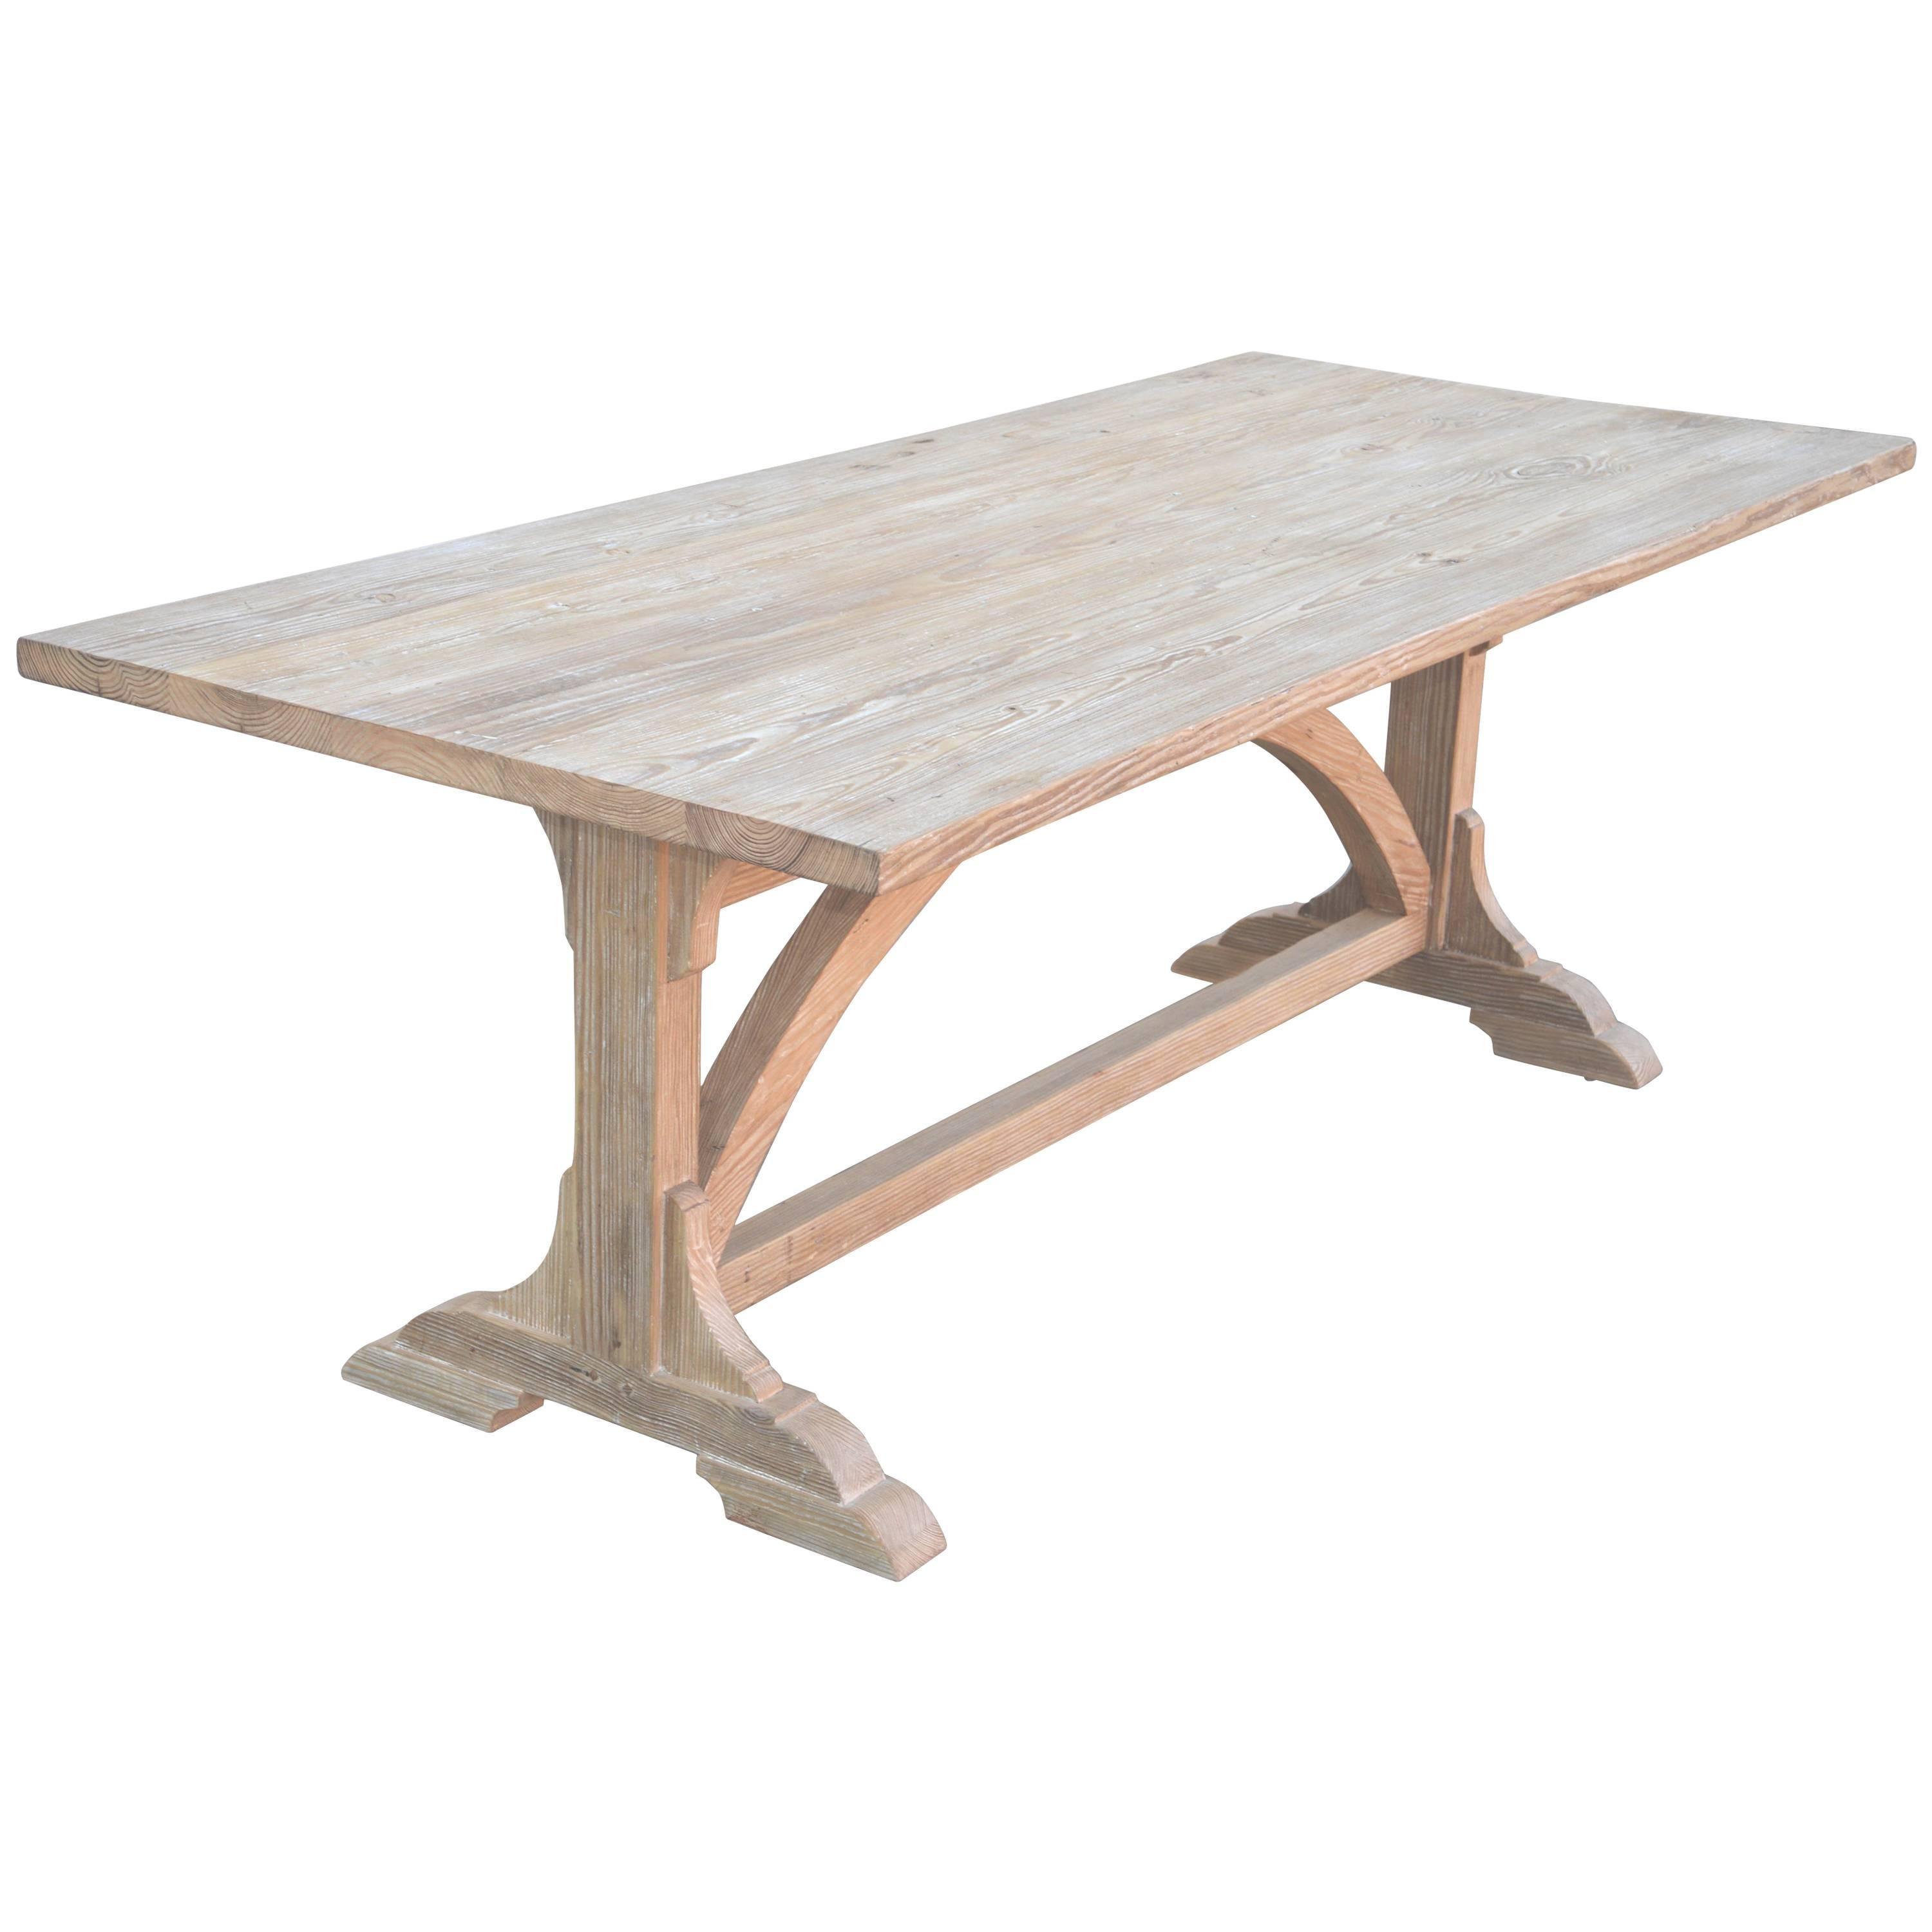 Expandable Farm Table in Vintage Heart Pine, Made to Order by Petersen Antiques